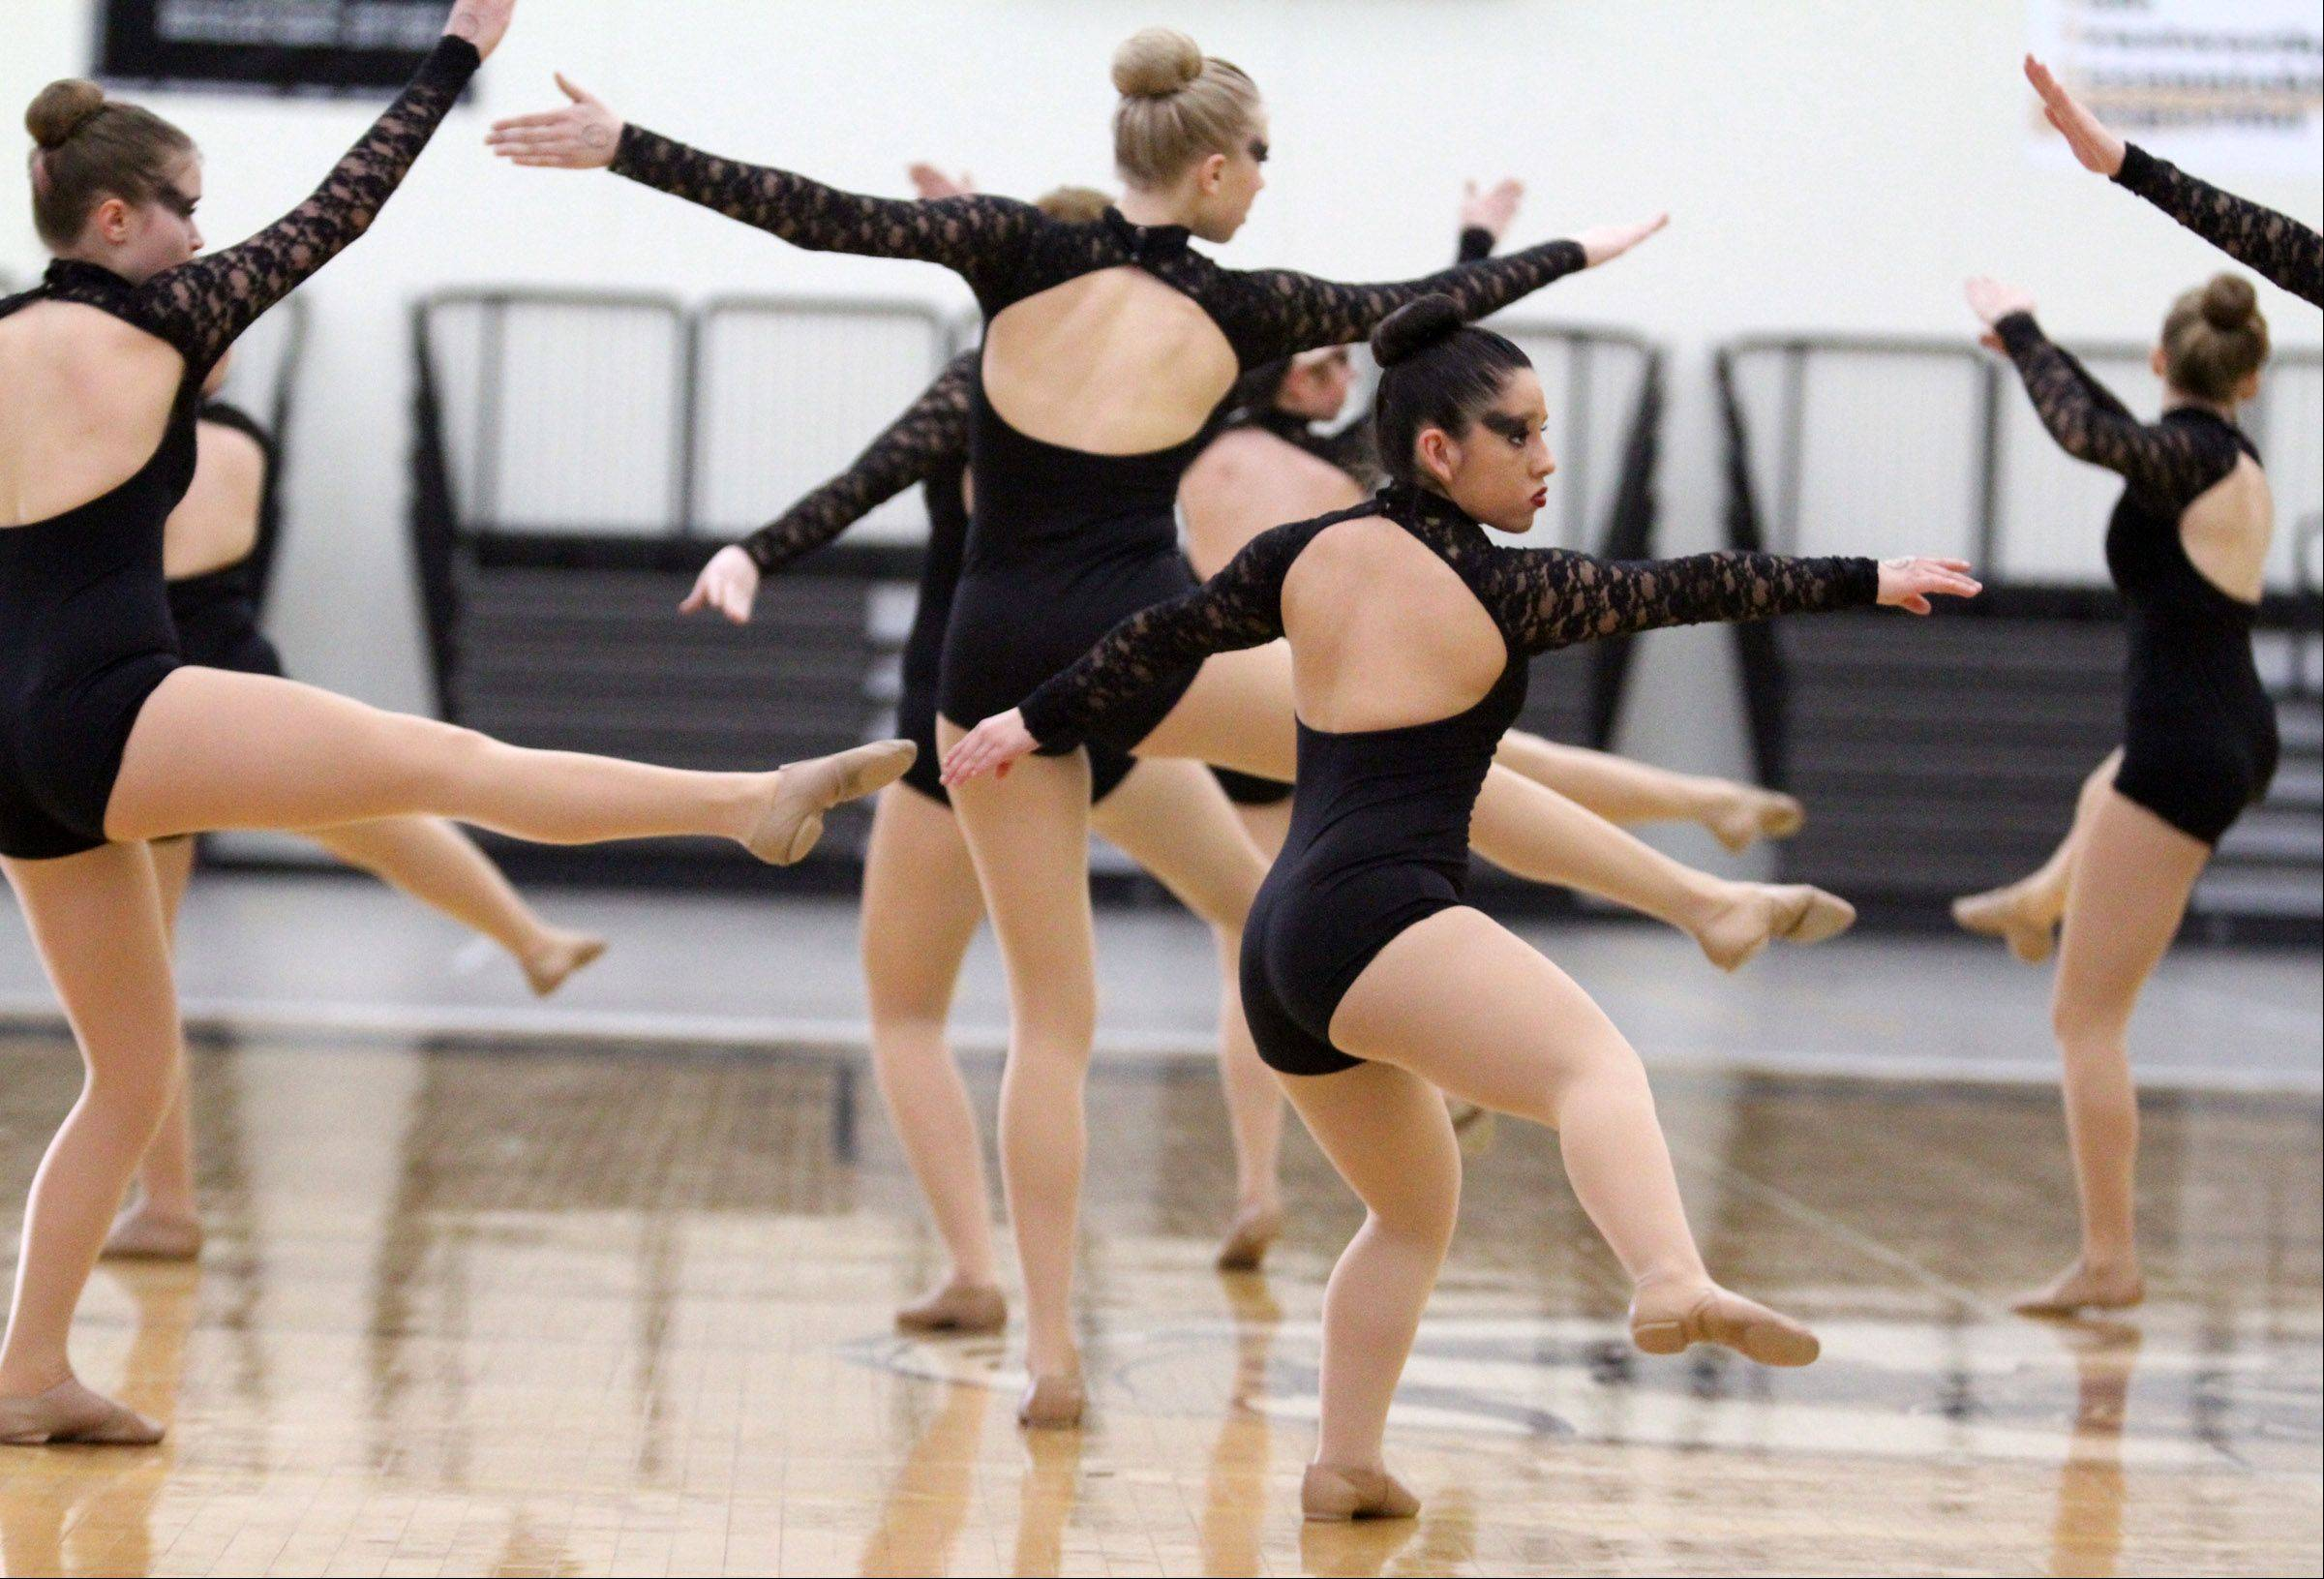 George LeClaire/gleclaire@dailyherald.comWauconda High School dance team competes at IHSA competitive dance sectional in Grayslake on Saturday.